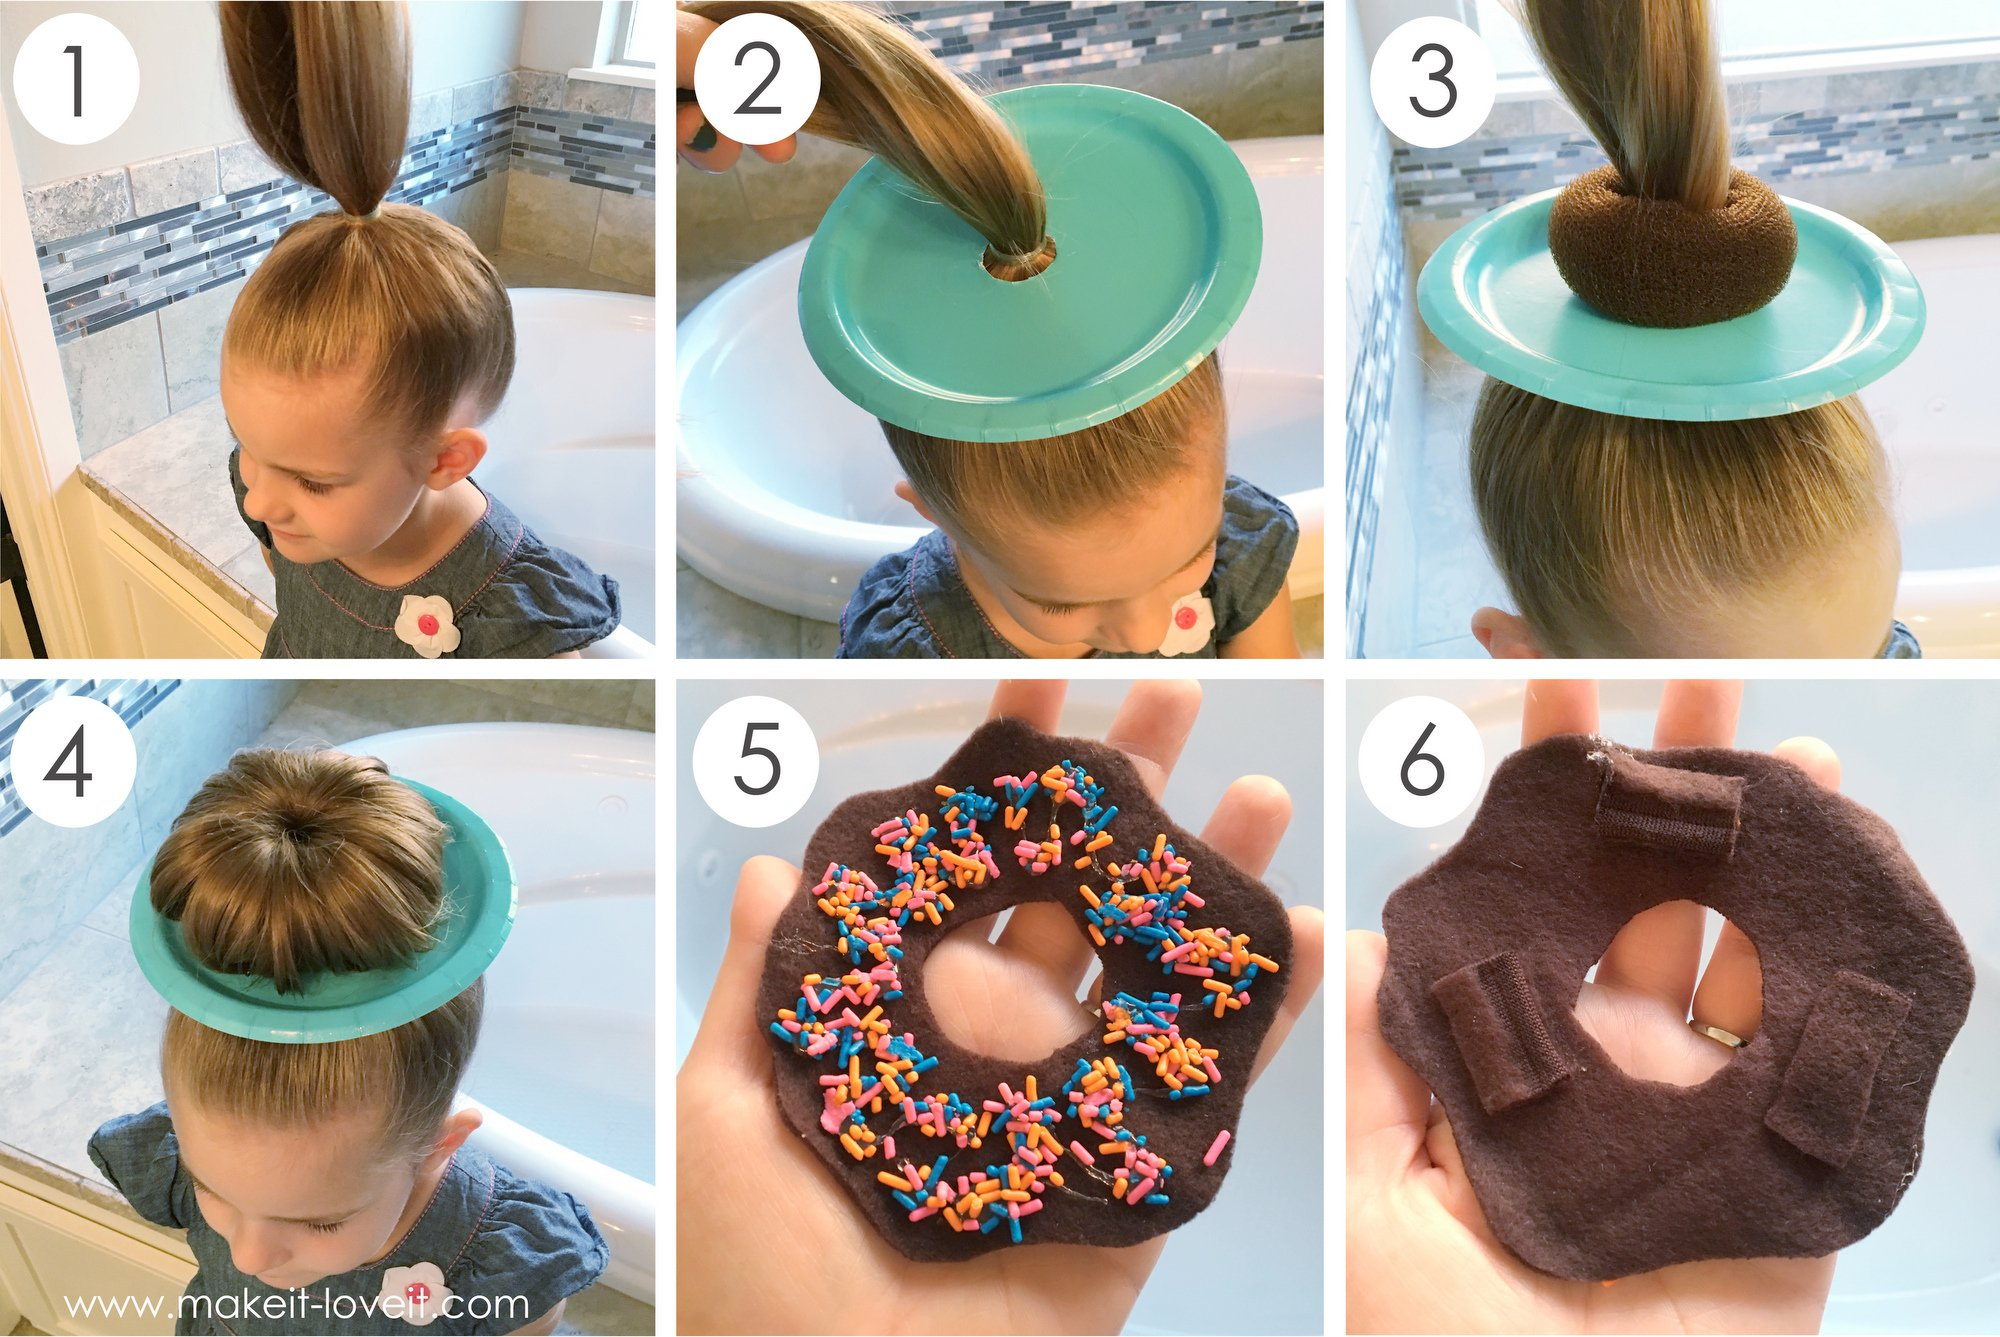 25 clever ideas for wacky hair day at school cluding make solutioingenieria Image collections